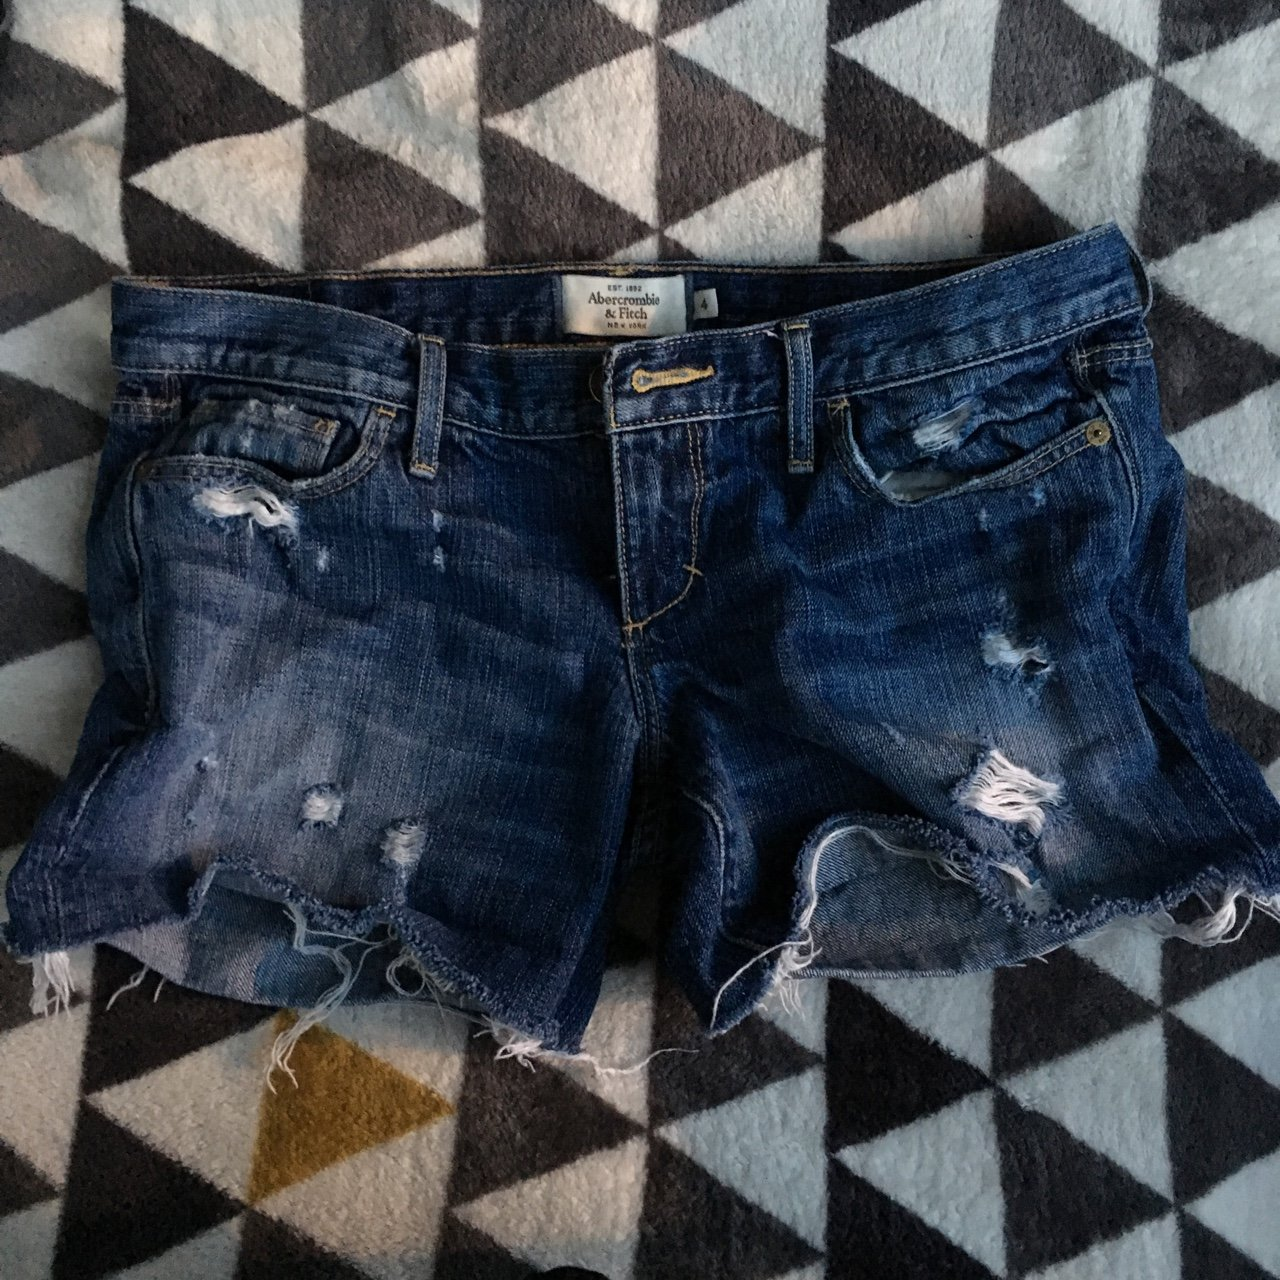 d472e3aea9ff9 Abercrombie   Fitch Denim Shorts🕊 Such